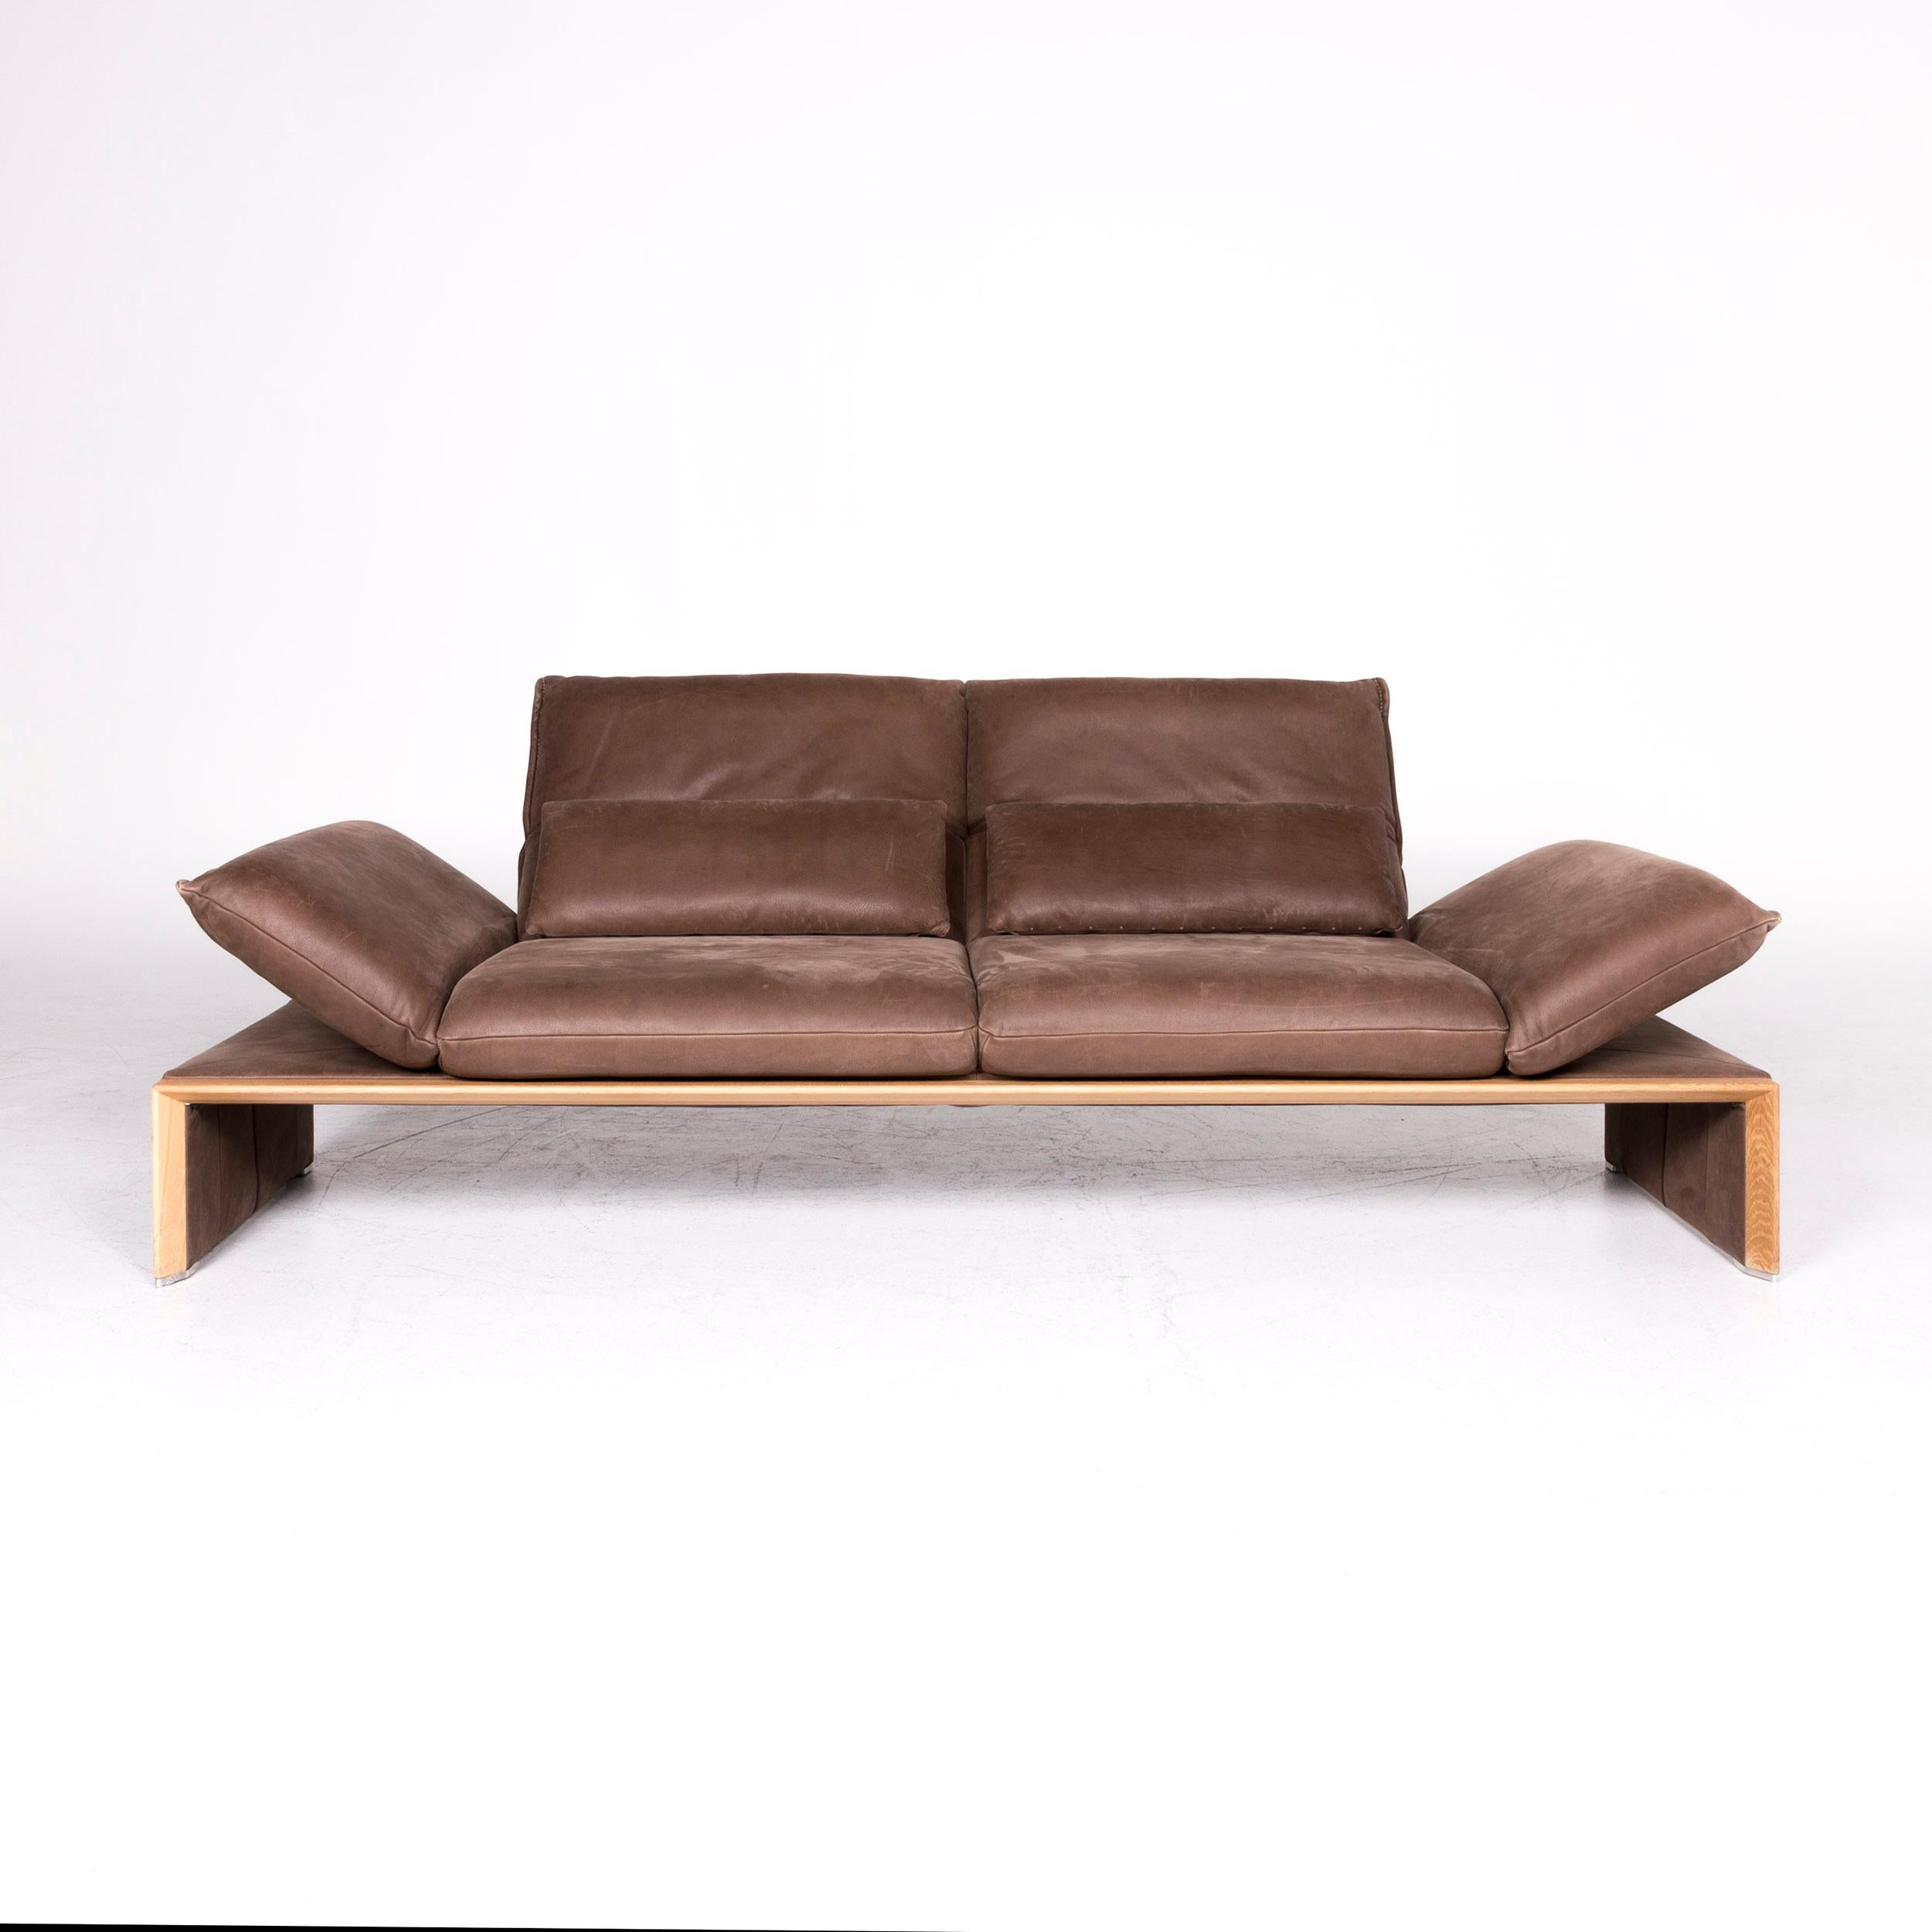 Koinor Houston Designer Leather Sofa Brown Two-Seat Couch For Sale ...